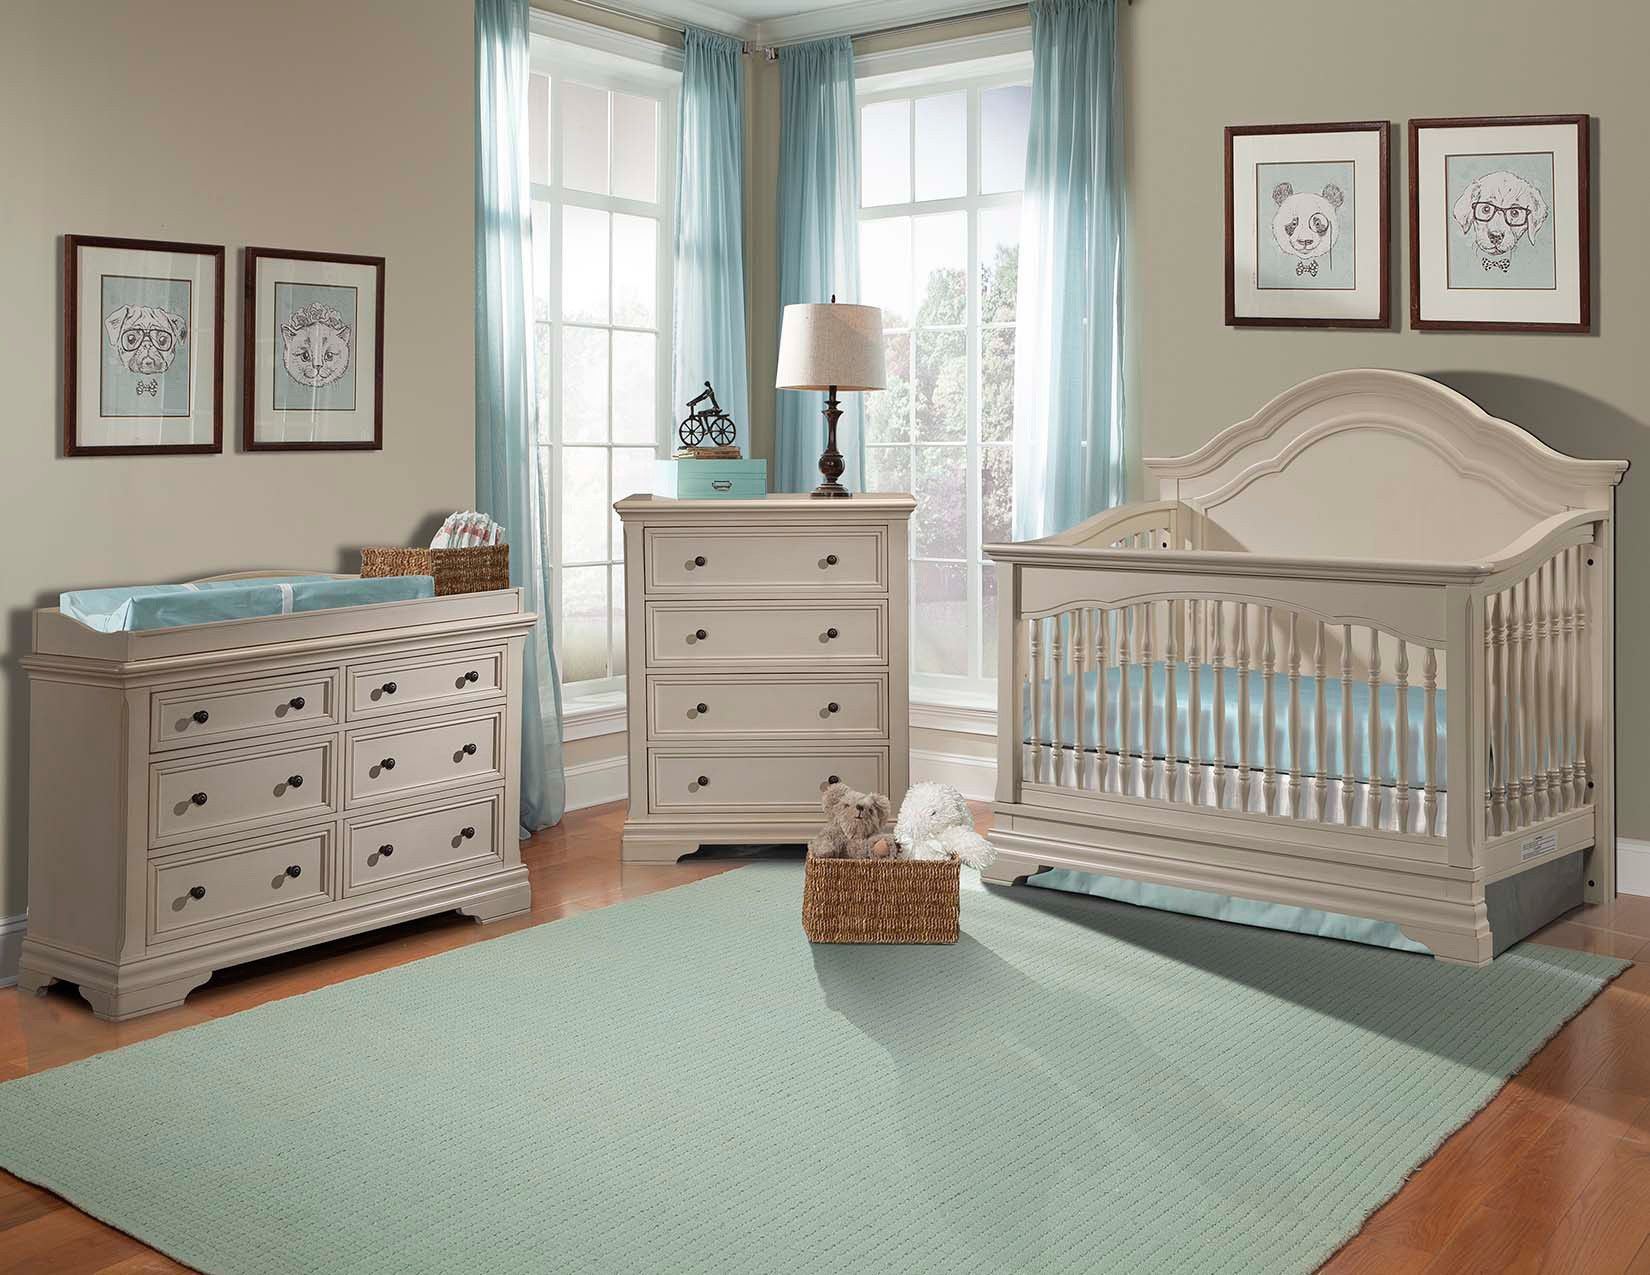 Stella Baby And Child Athena 3 Piece Nursery Set In Belgium Cream Also Comes In French White At